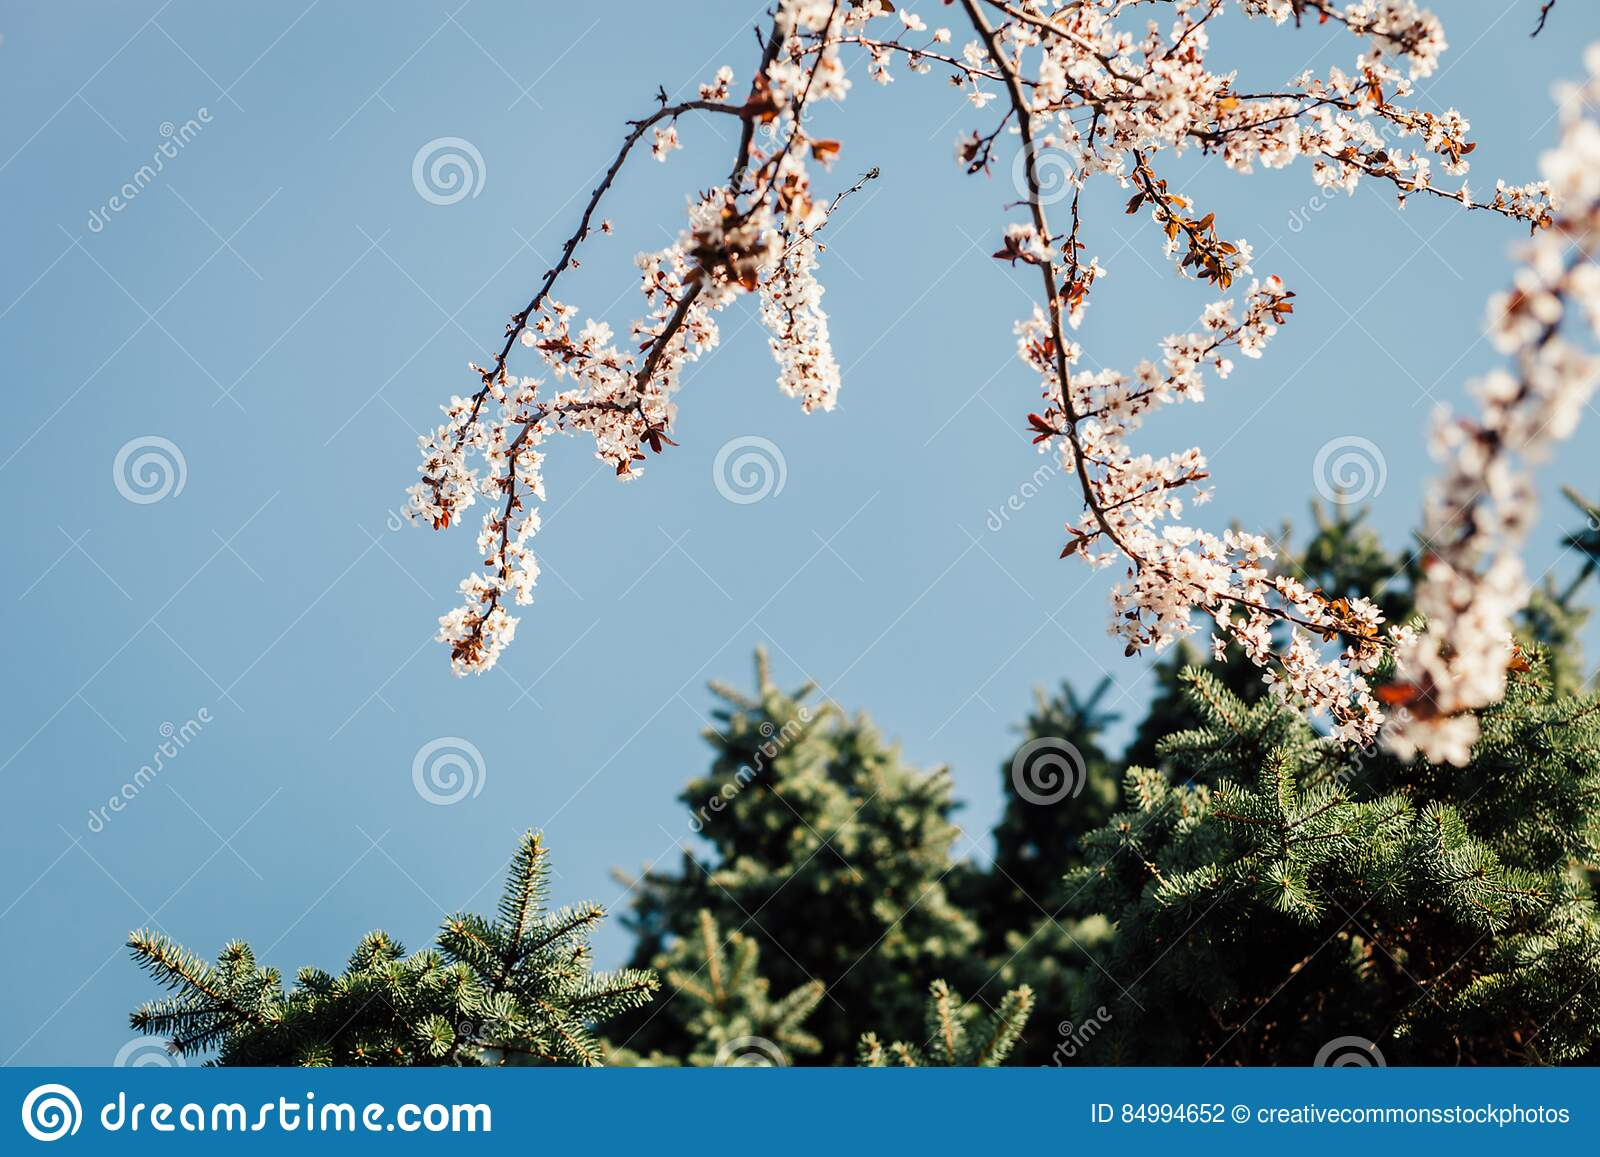 Download White Petaled Flower Under Clear Blue Sky During Daytime Stock Photo - Image of outdoors, nature: 84994652